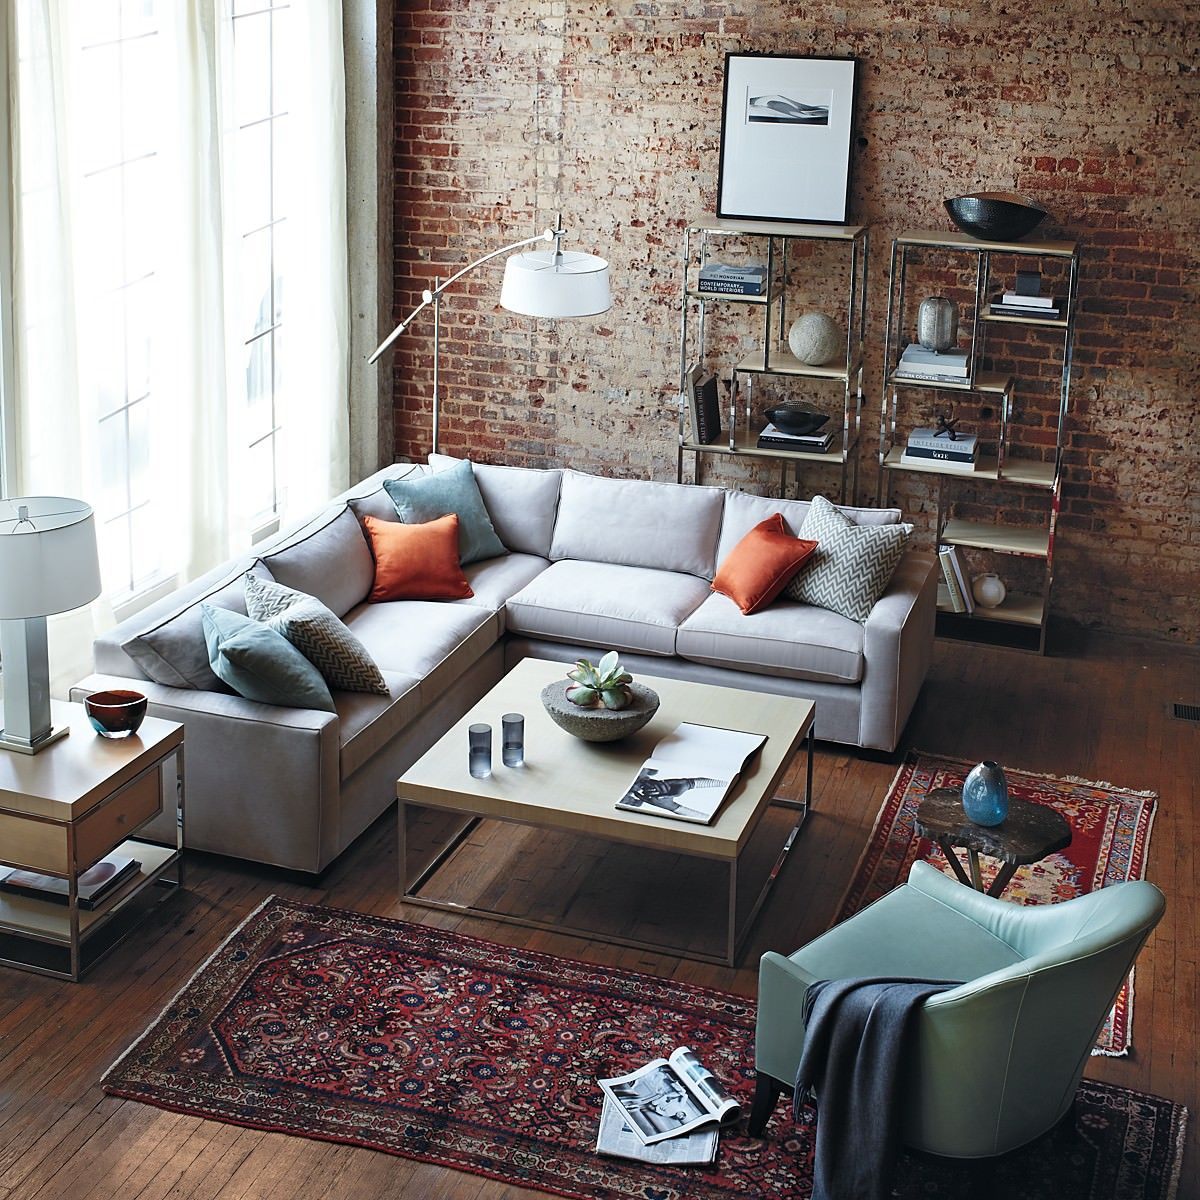 Room An Enchanting Living Design With Red Brick Wall Modern Grey Sofa